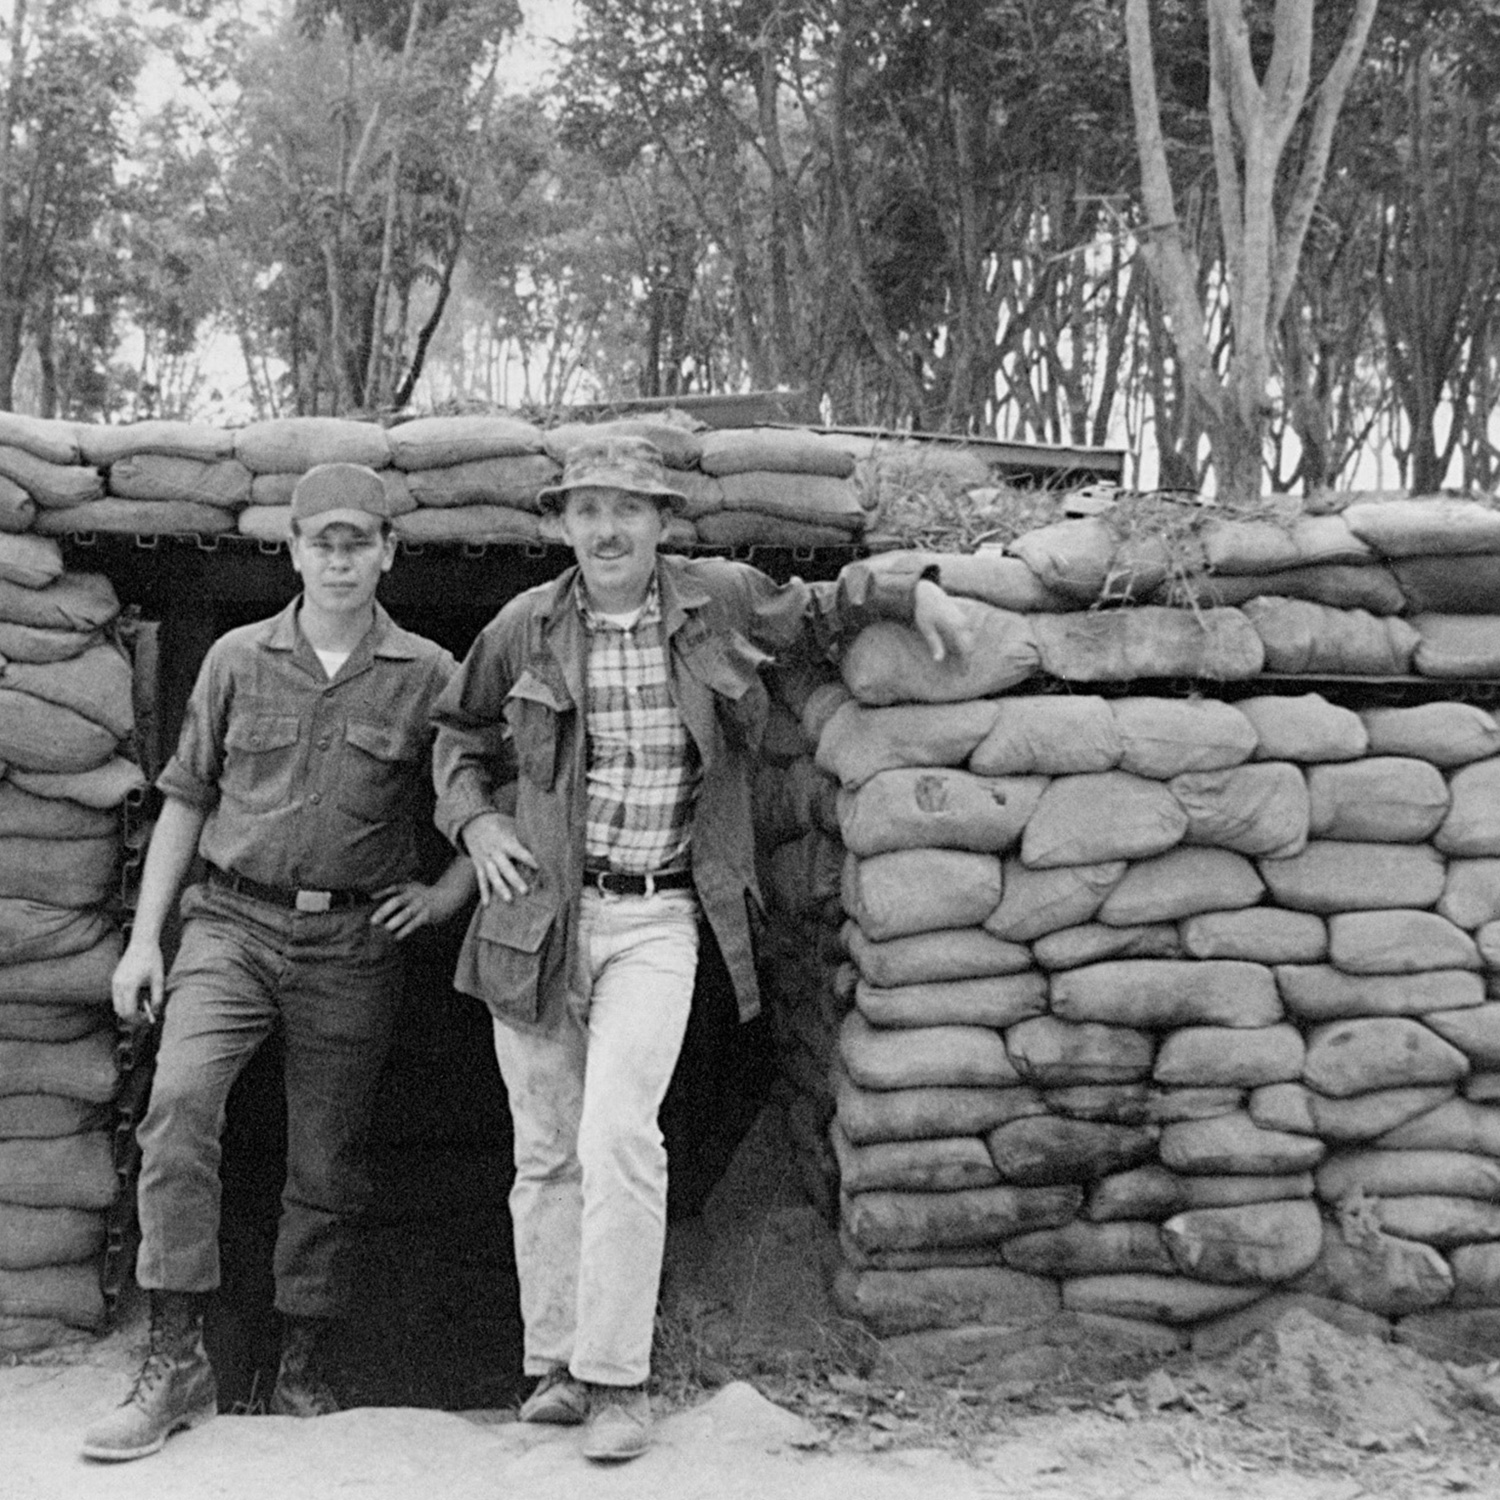 John 'Chick' Donohue with his friend Sgt. Bobby Pappas in Vietnam